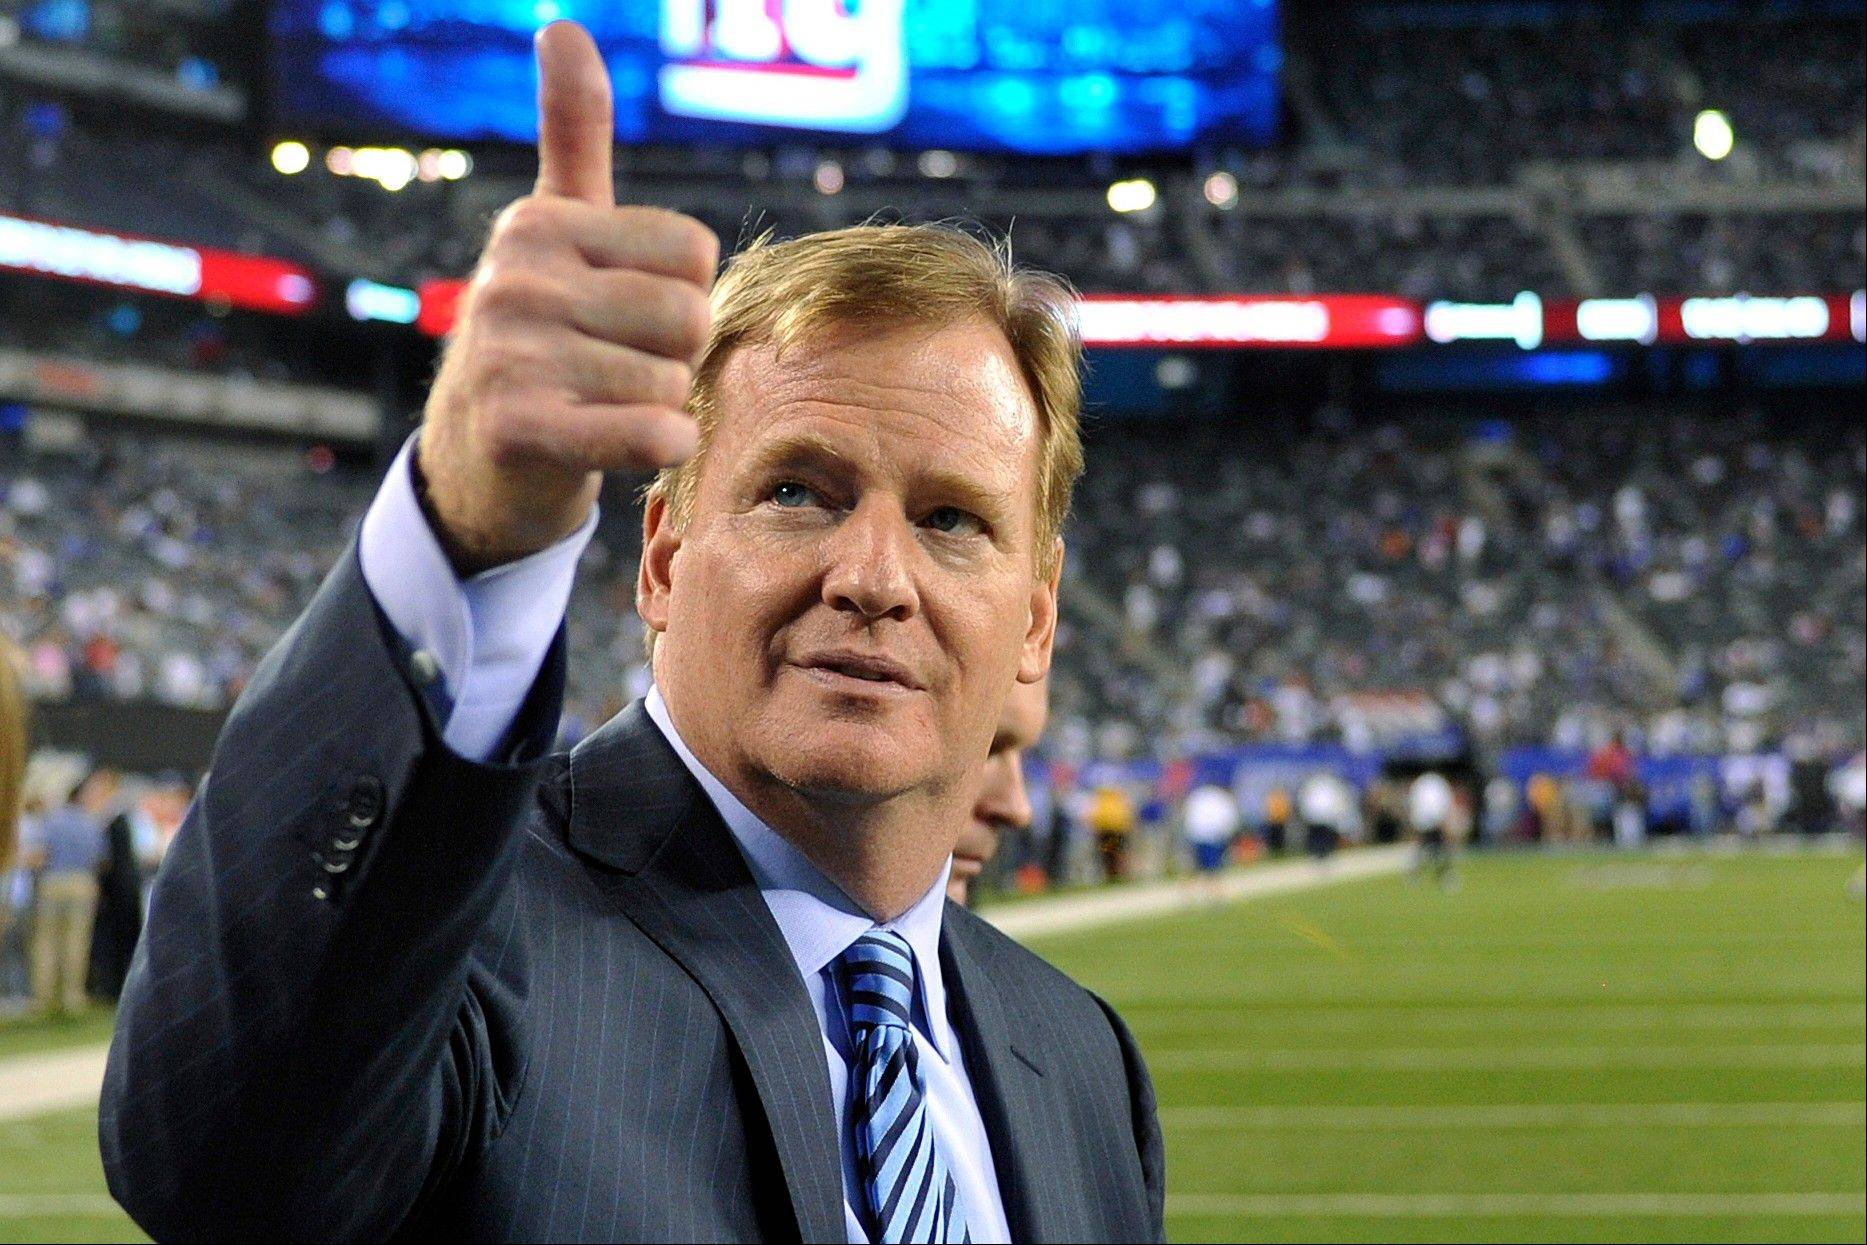 Goodell apologizes to fans for replacement games